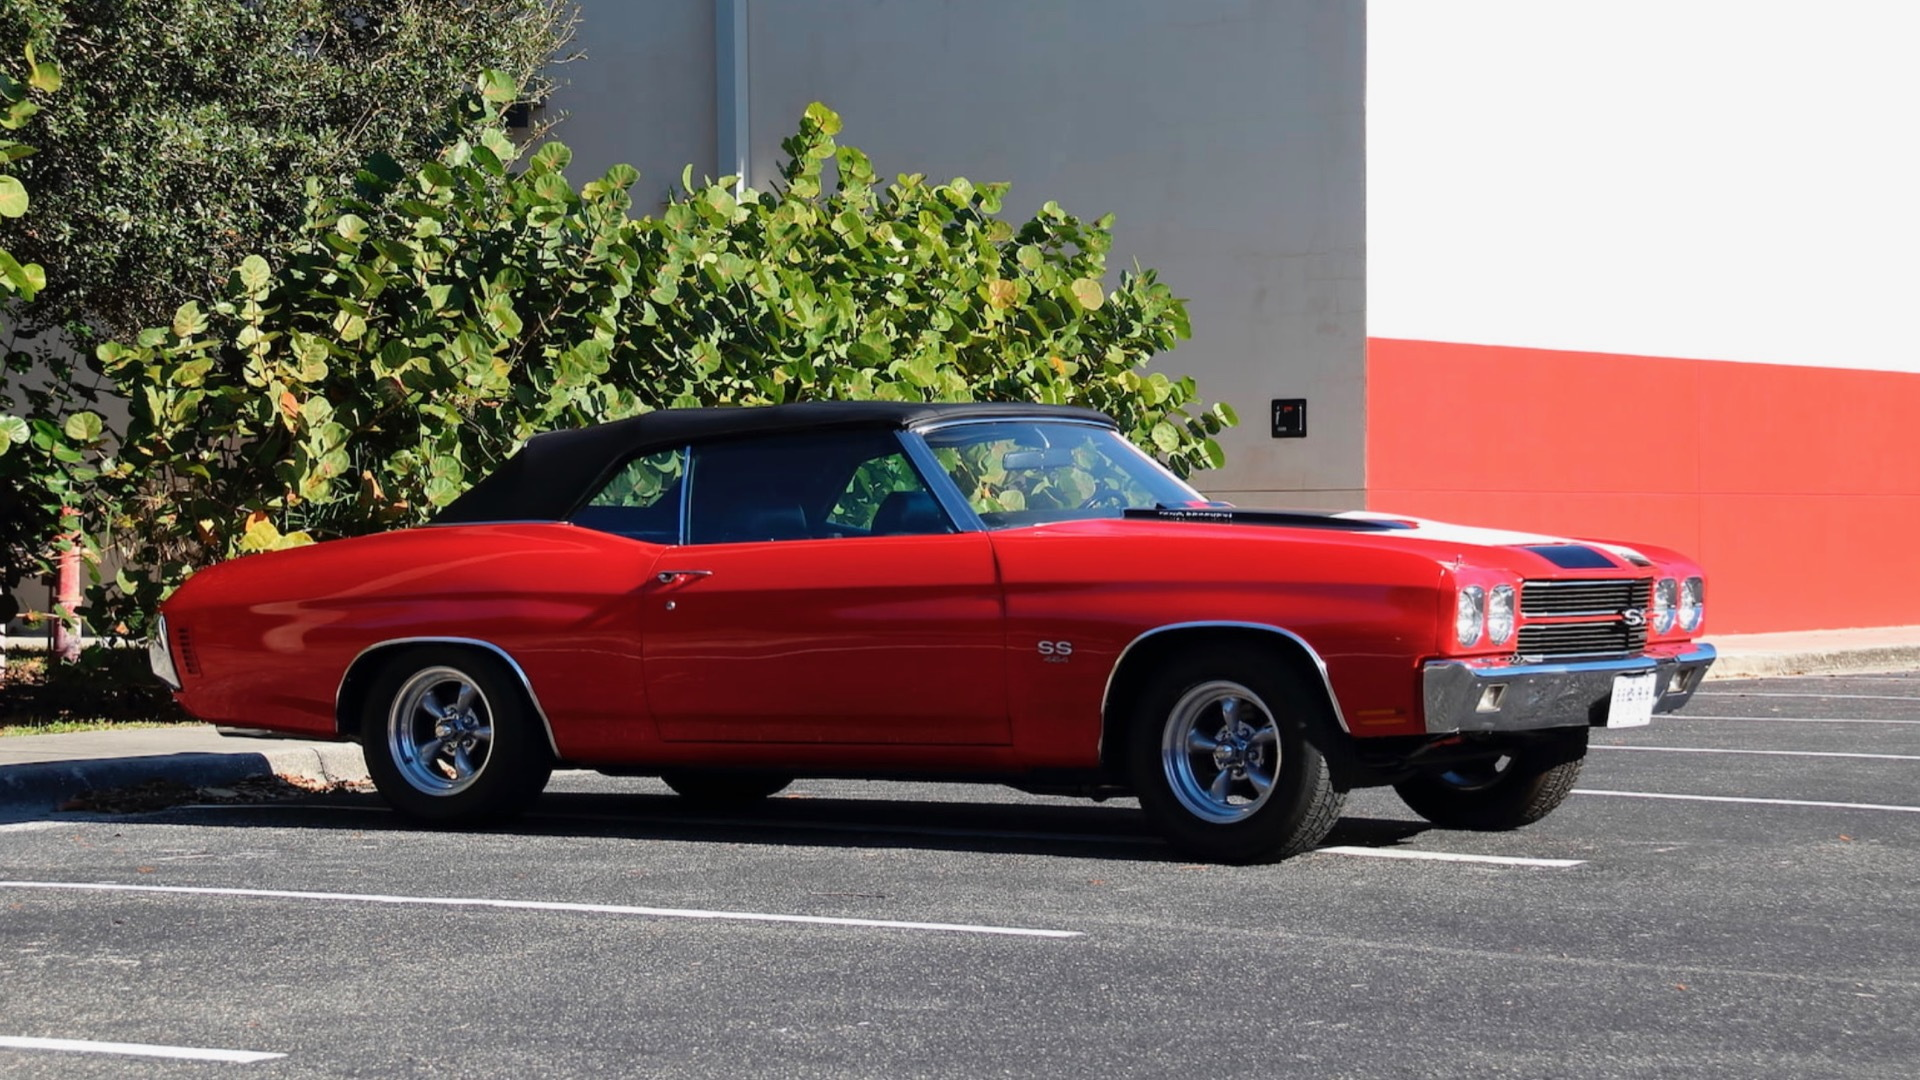 1970 Chevrolet Chevelle SS from Rick Treworgy collection (Photo by Mecum Auctions)